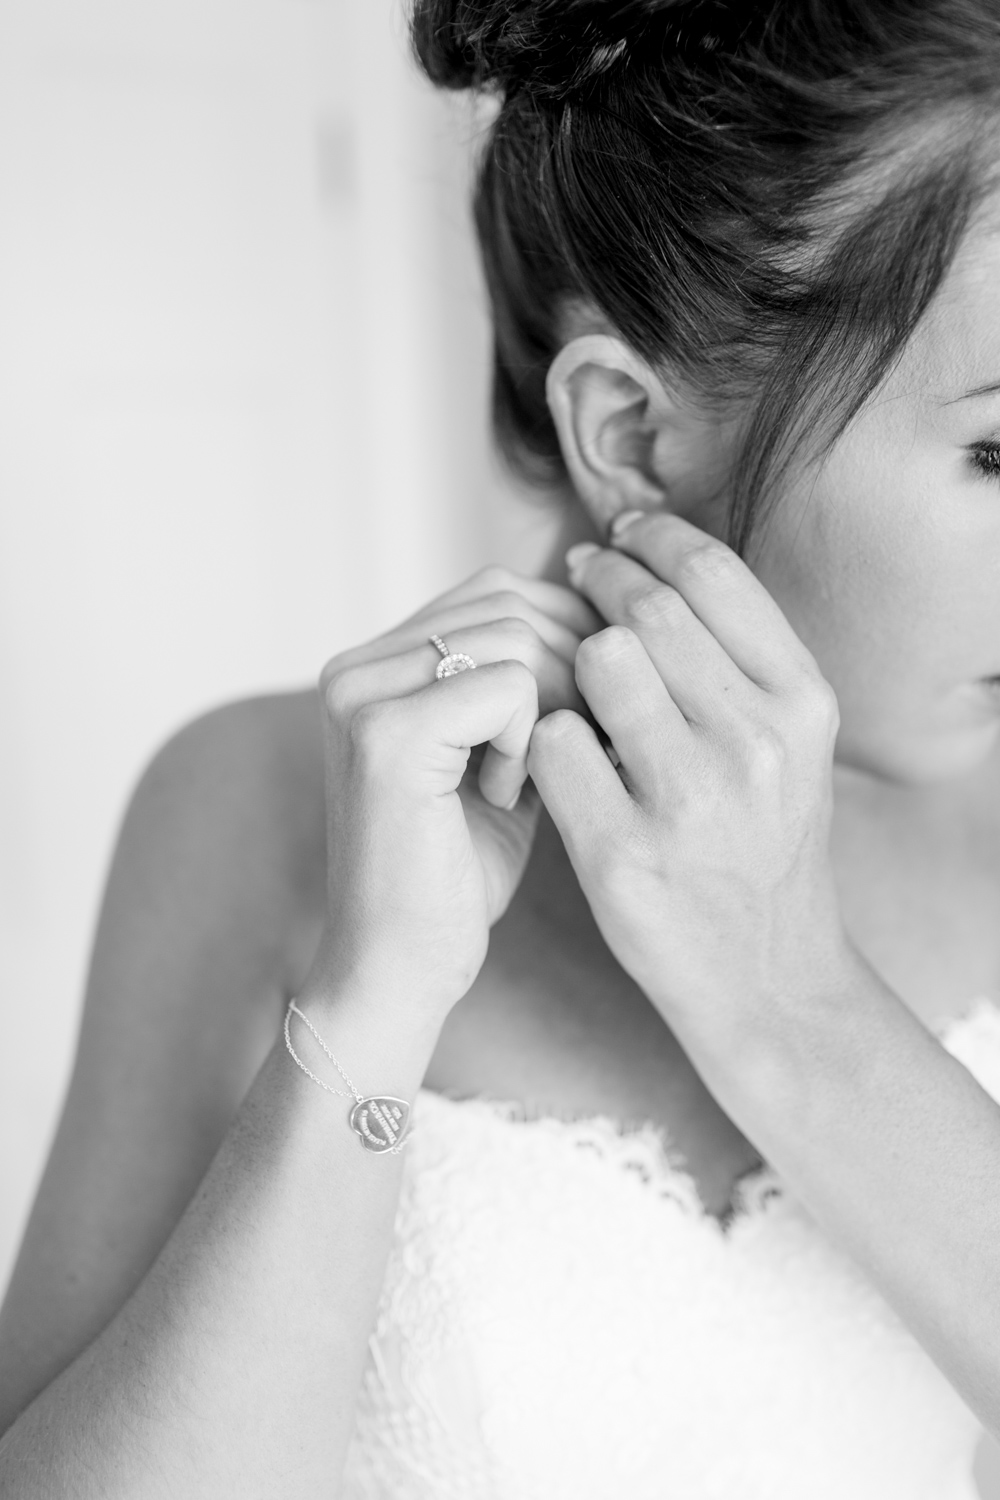 bride fastening the earring on the morning of her wedding day